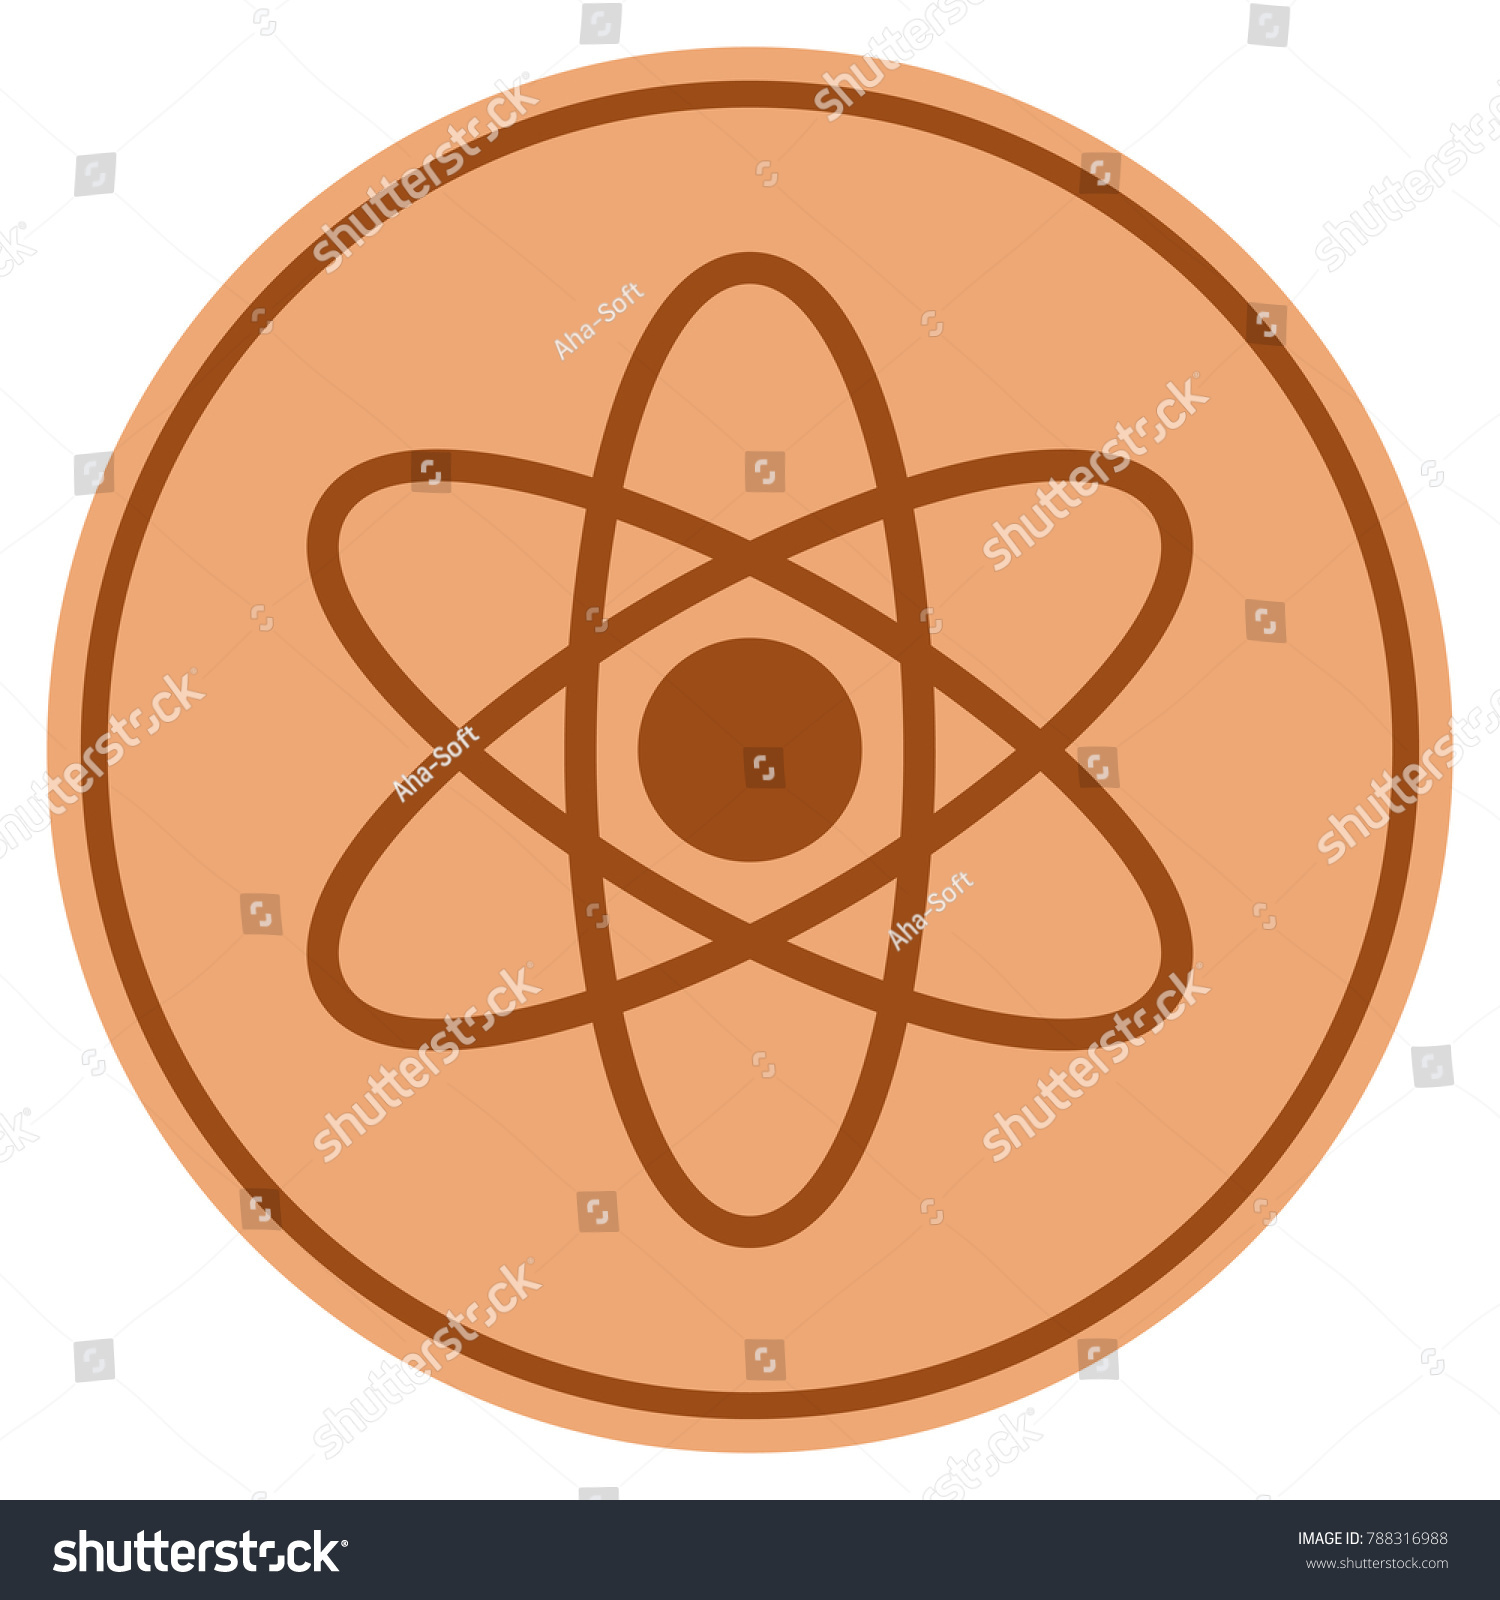 Bronze element symbol image collections symbol and sign ideas atom bronze coin icon vector style stock vector 788316988 atom bronze coin icon vector style is urtaz Choice Image